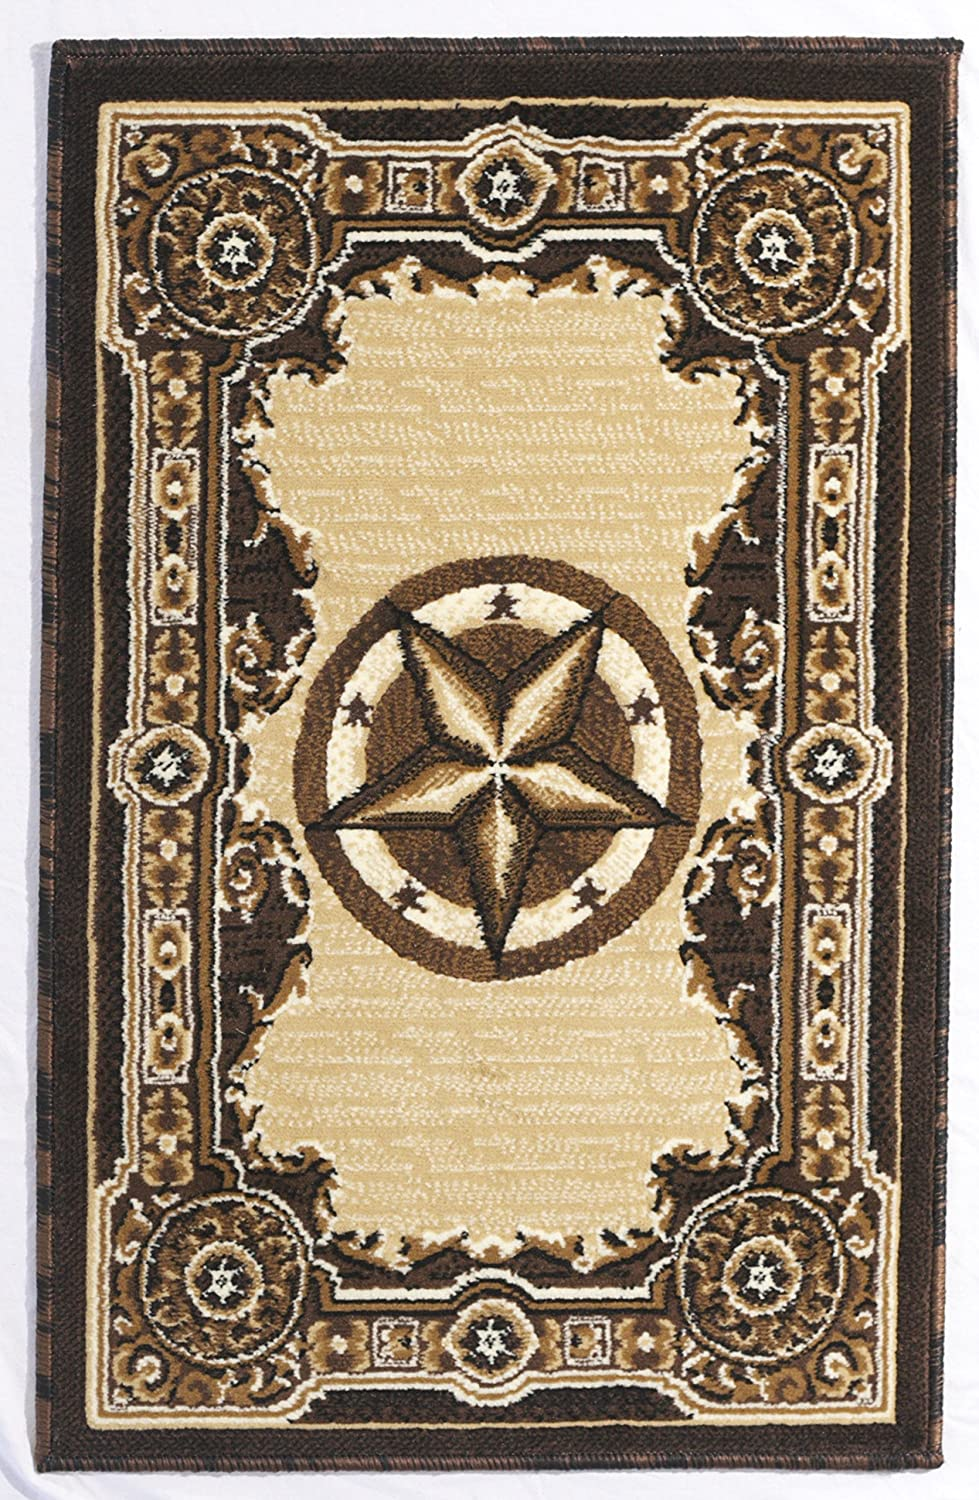 Rugs 4 Less Collection Texas Lone Star State Novelty Door Mat Area Rug R4L 723 Chocolate / Brown (2